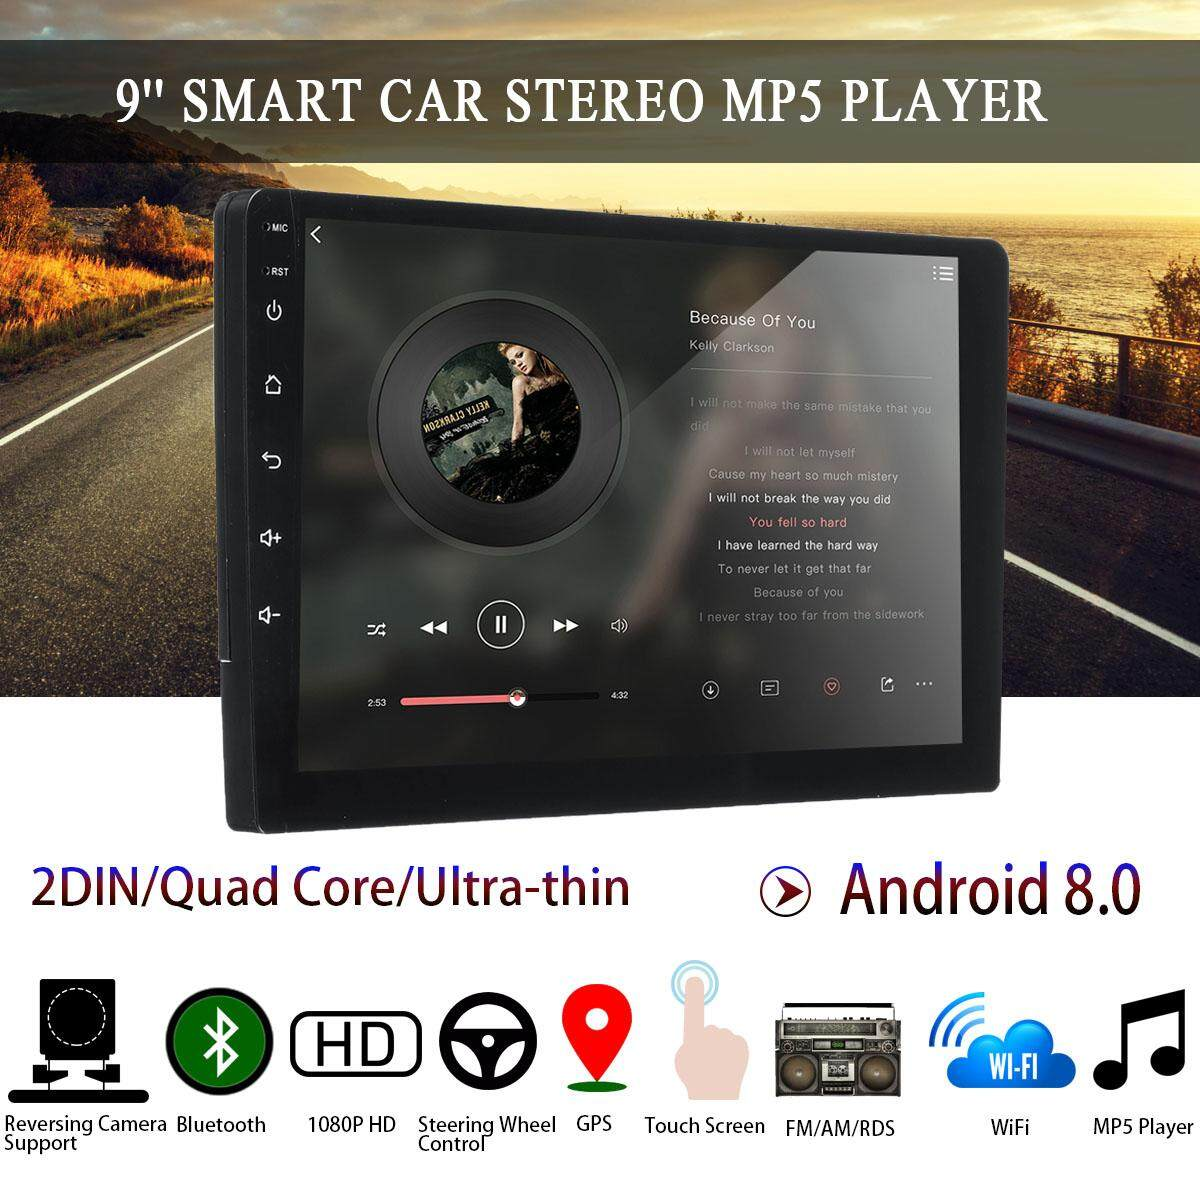 【free Shipping + Super Deal + Limited Offer】9 Android 8.0 Ultra-Thin Car Stereo 2din Quad Core Radio Wifi Mp5 Player Gps By Haldis.